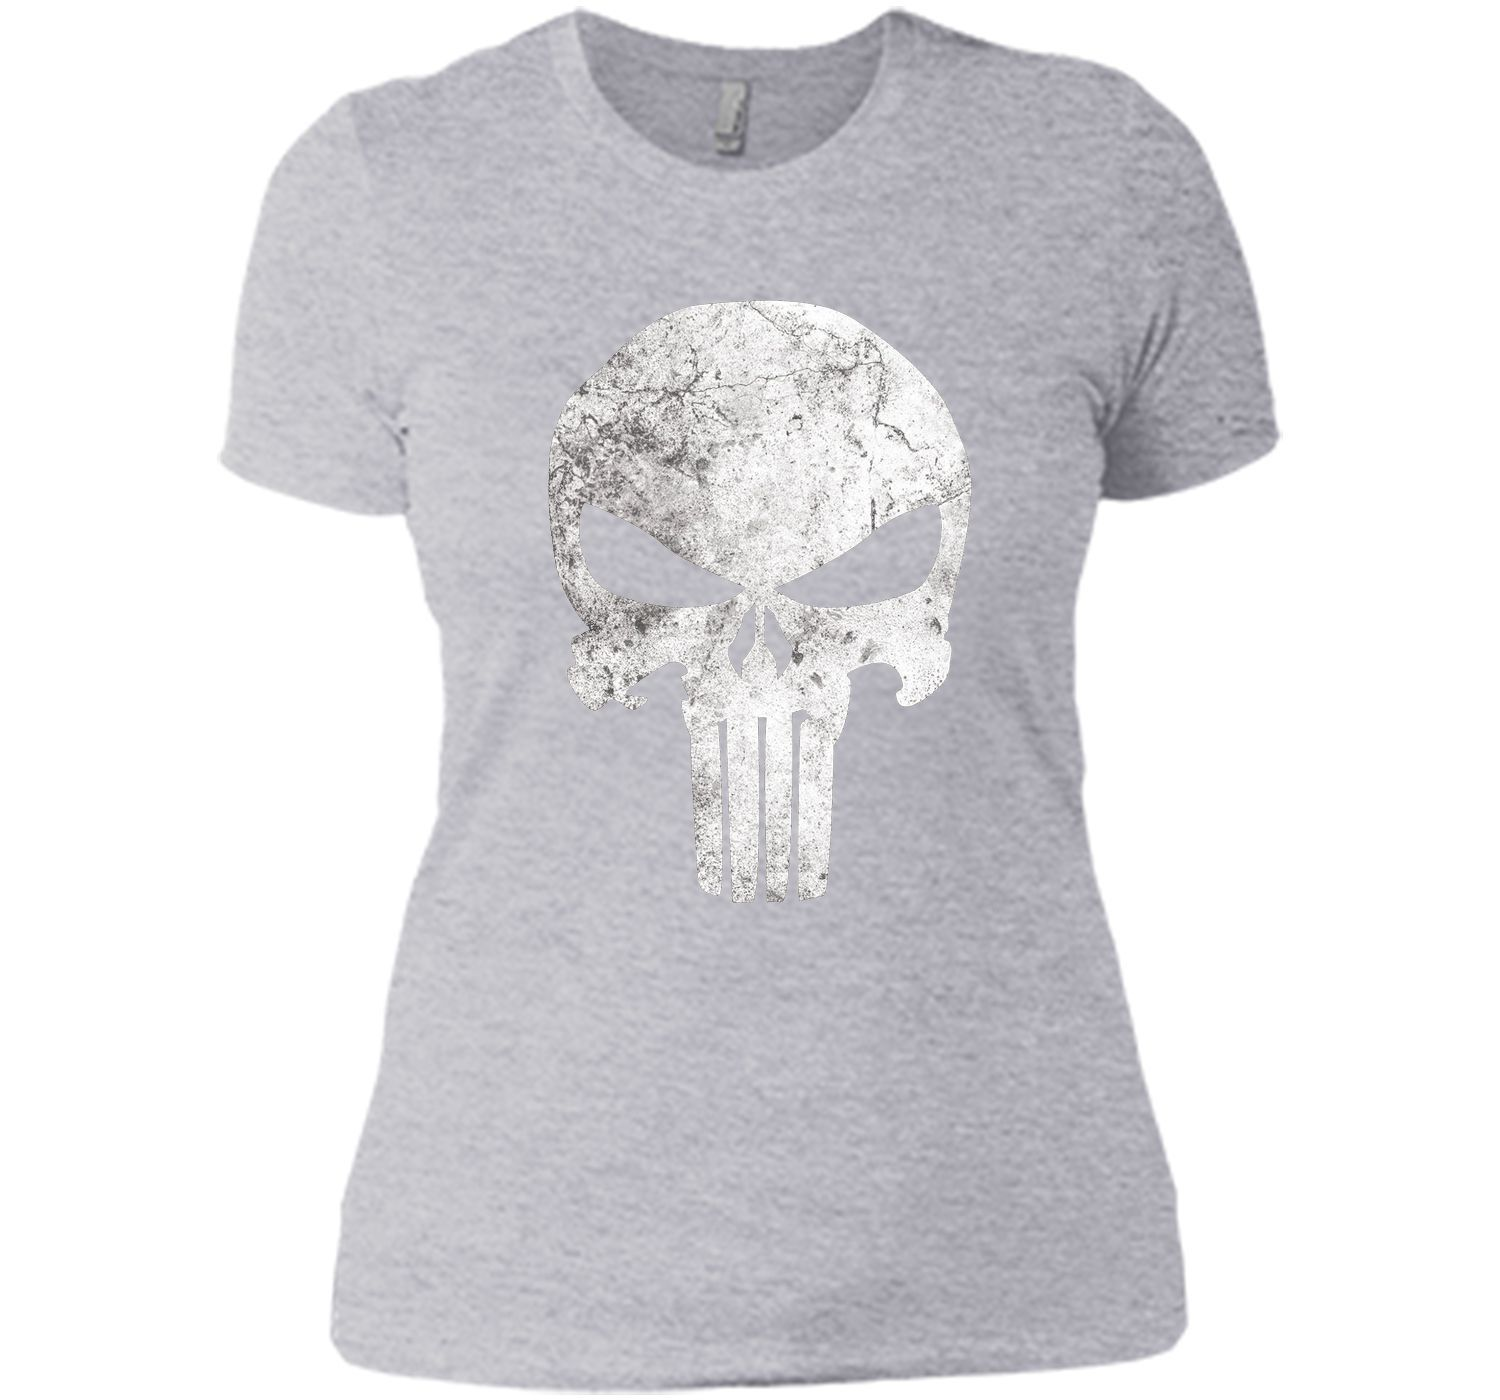 02a0c3aacda373 Marvel Punisher Retro Skull Symbol Graphic T-Shirt | Products ...